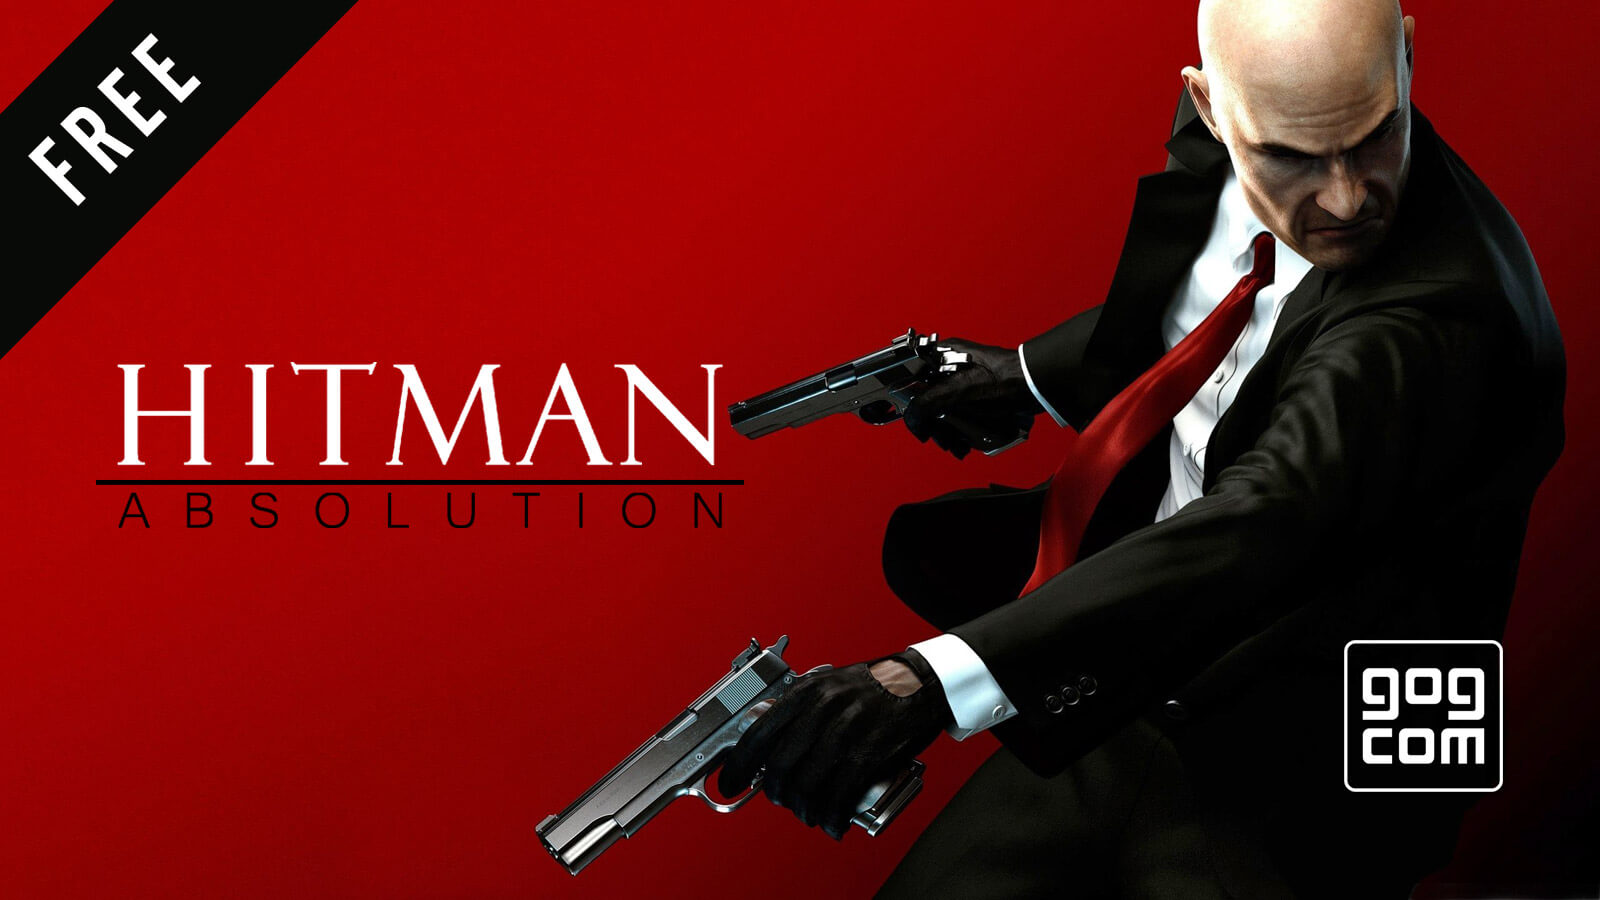 Hitman Absolution Free On Gog Now Gameslaught